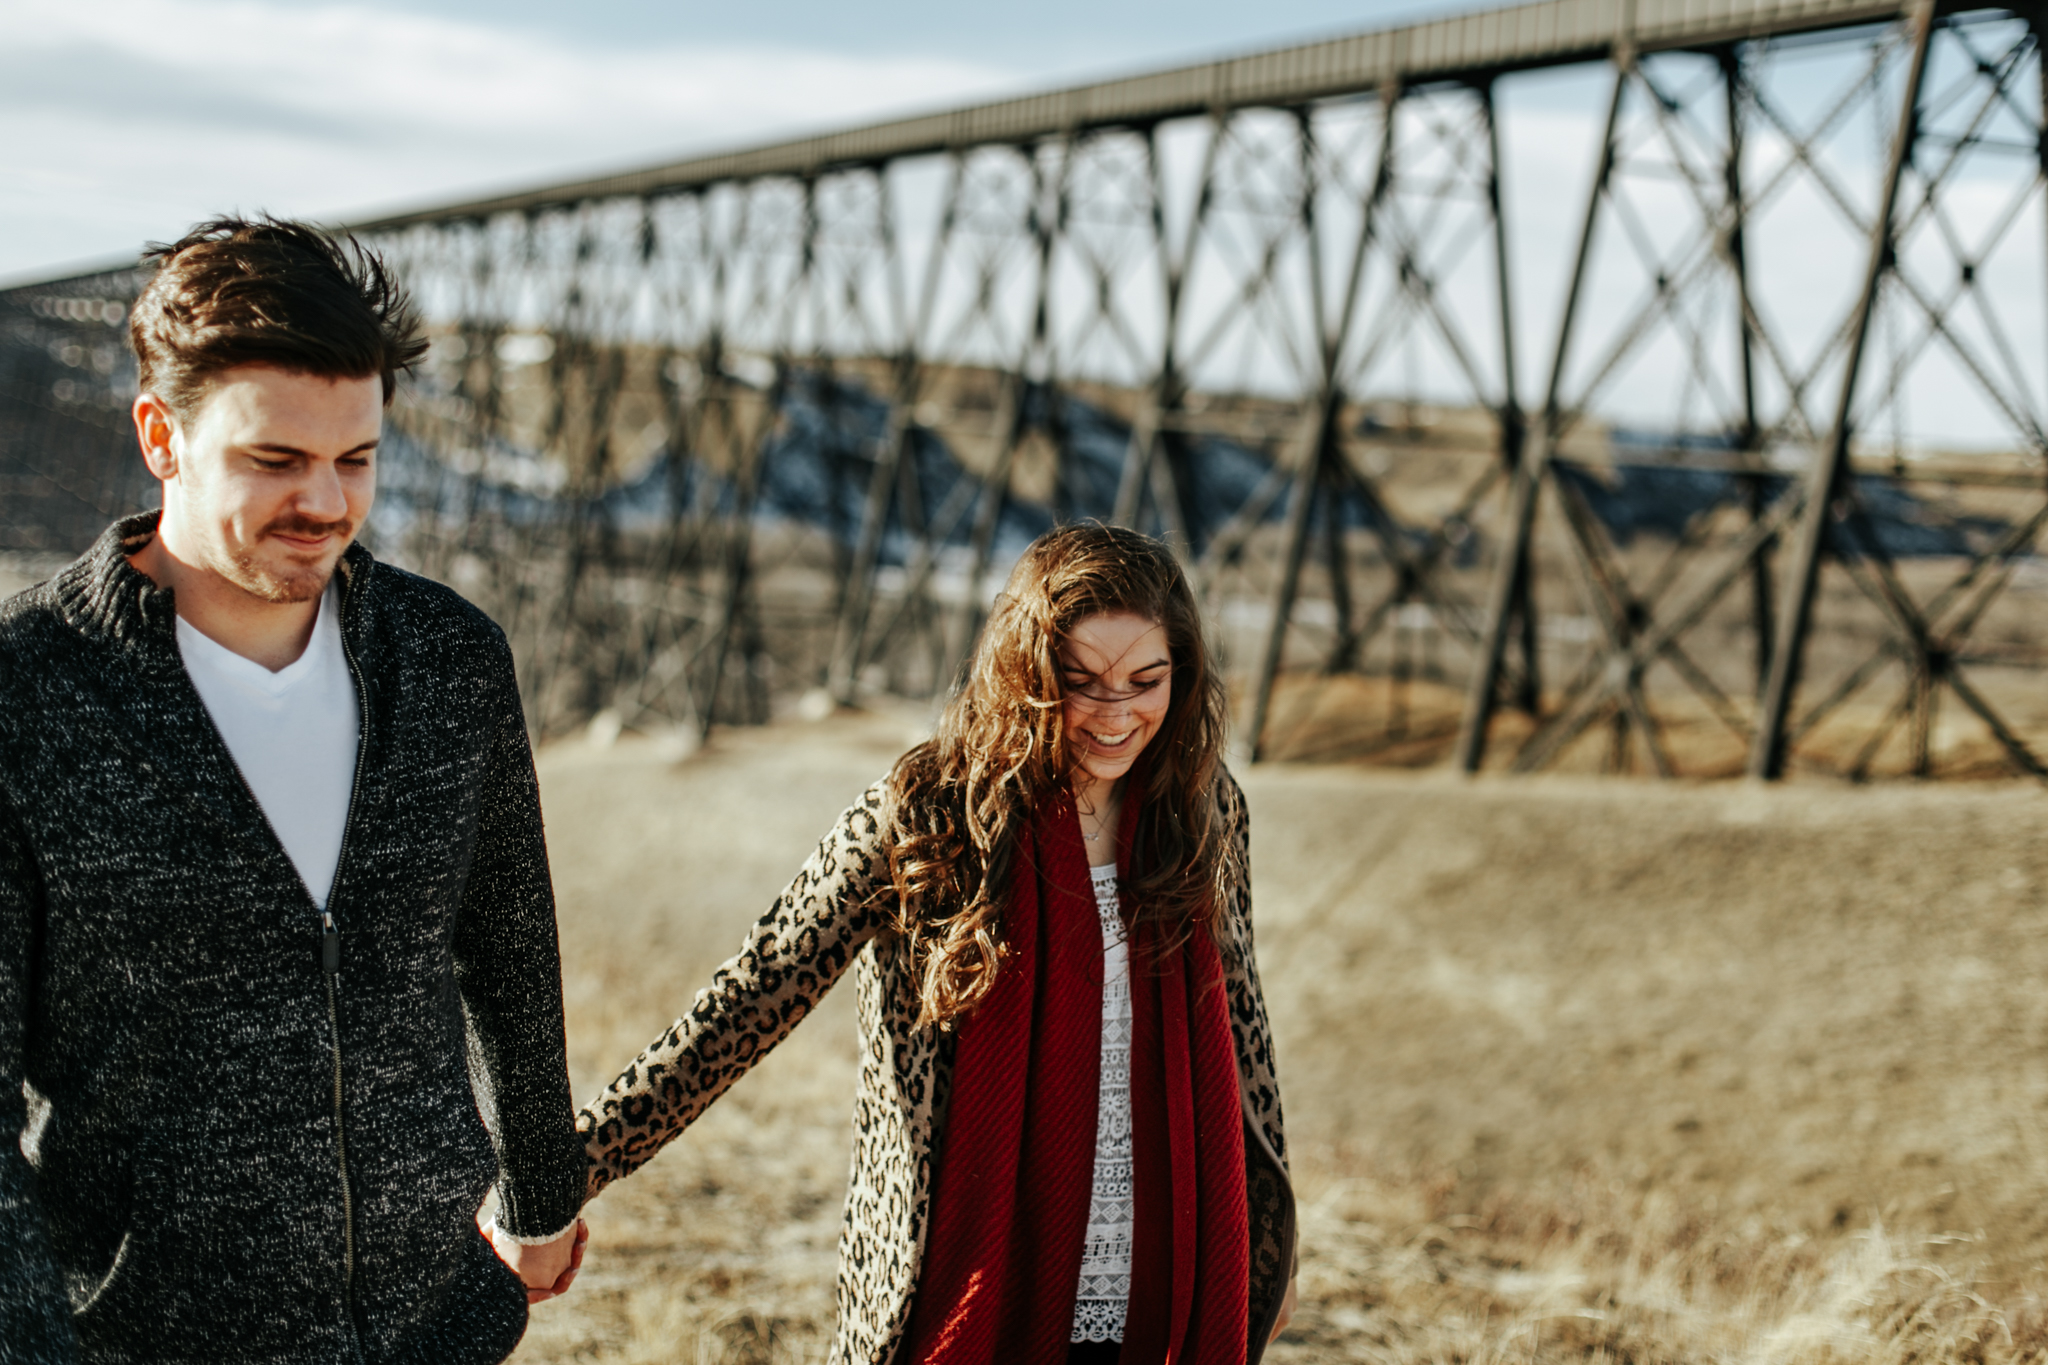 lethbridge-photographer-love-and-be-loved-photography-winter-engagement-emma-tanner-picture-image-photo-32.jpg